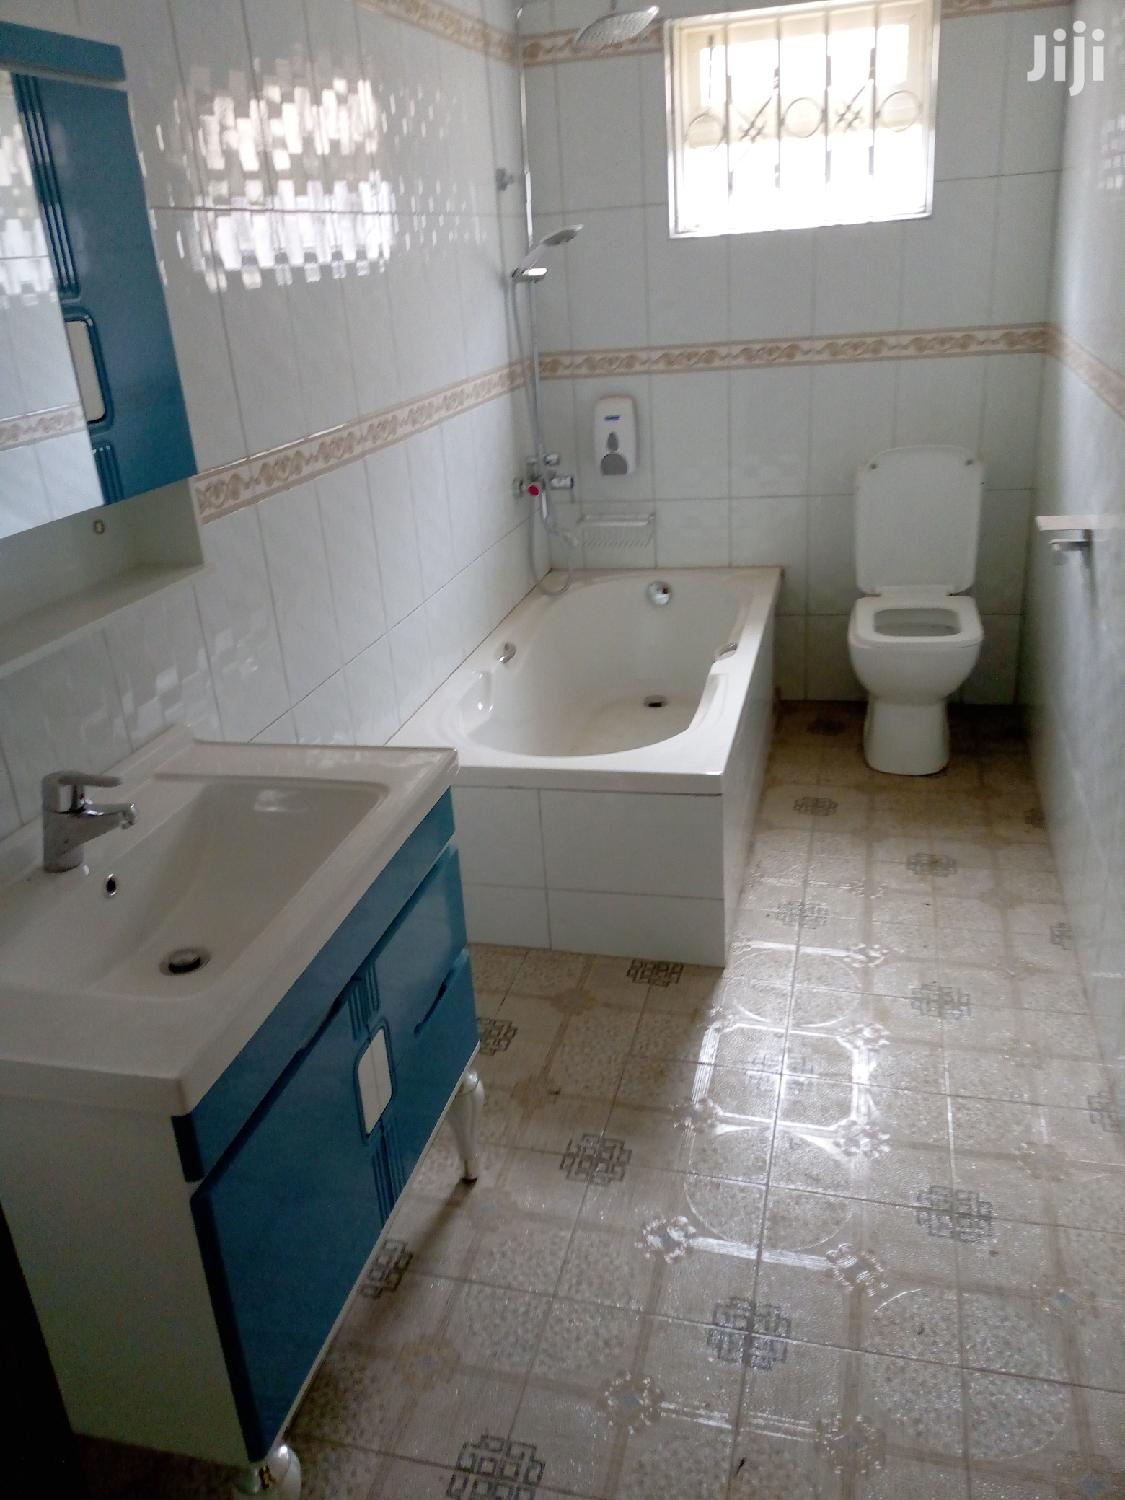 Four Bedroom House In Namugongo Catholic Church For Sale | Houses & Apartments For Sale for sale in Wakiso, Central Region, Uganda